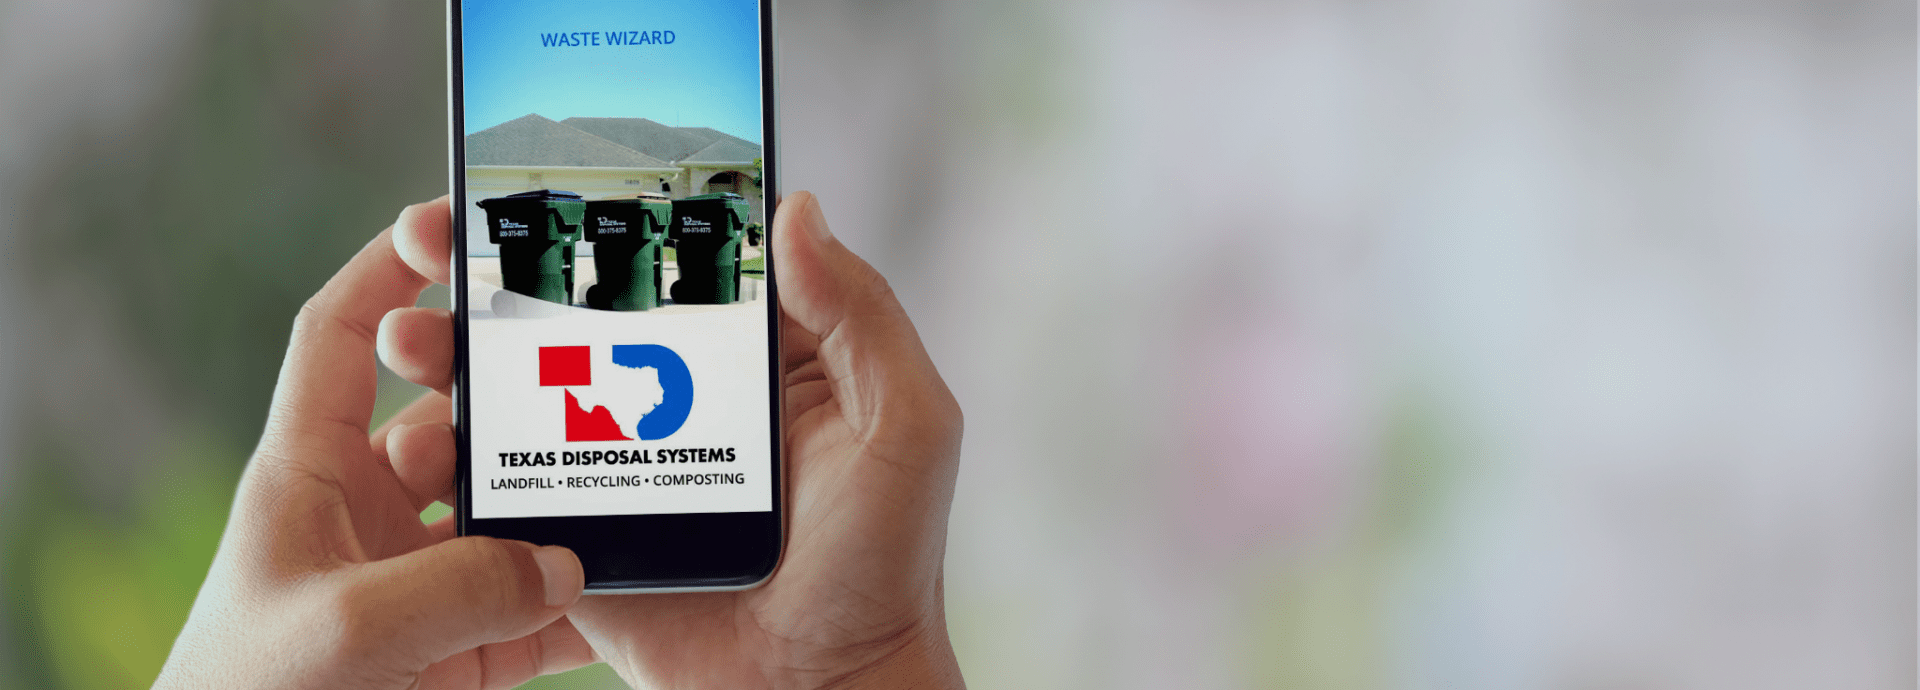 Download Our Waste Wizard App!